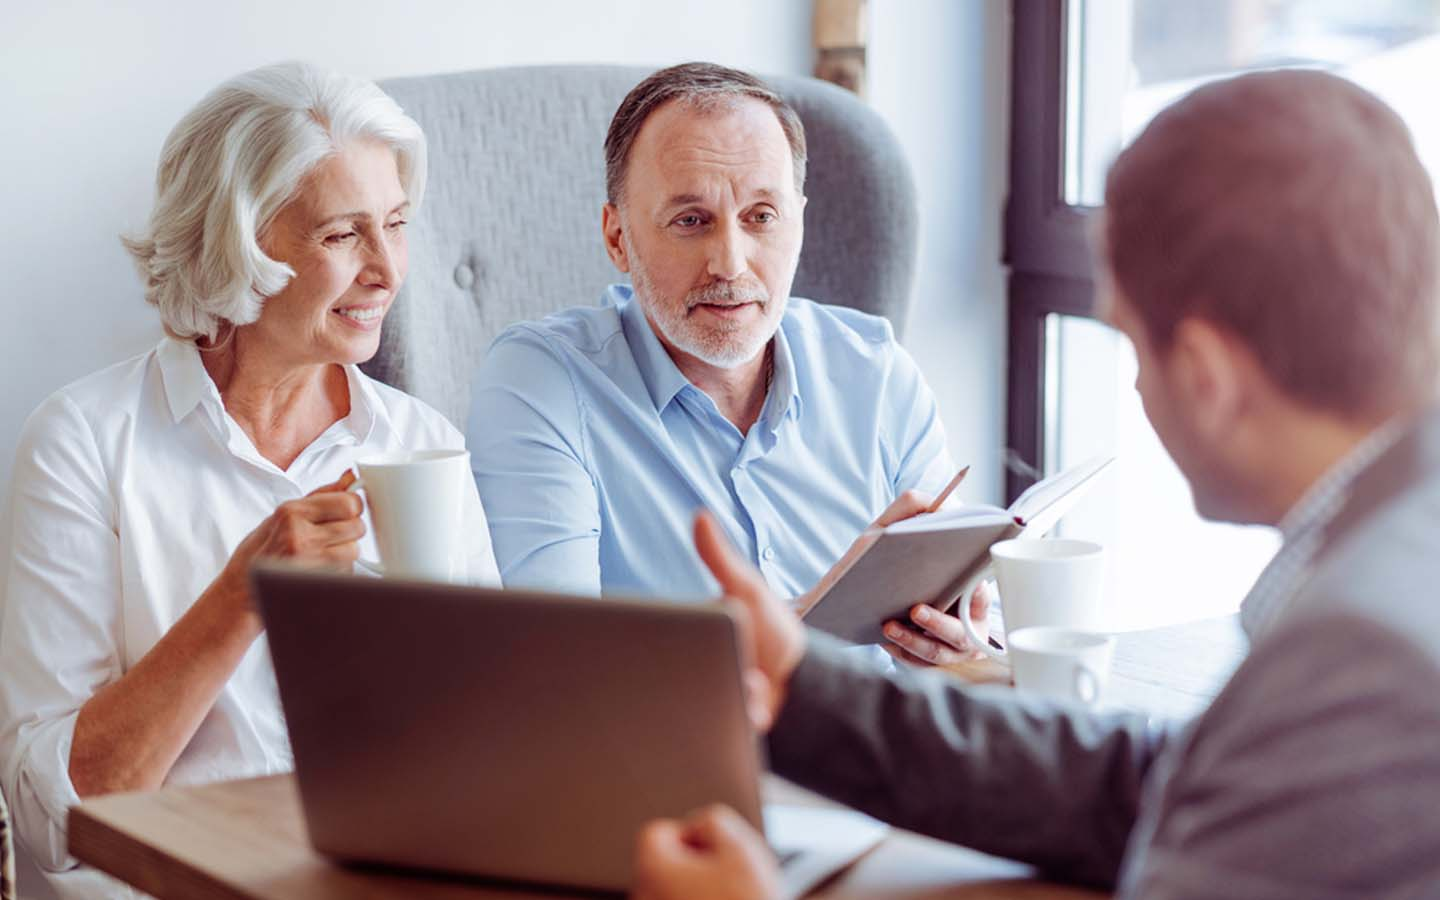 A couple discussing a health insurance plan with an agent